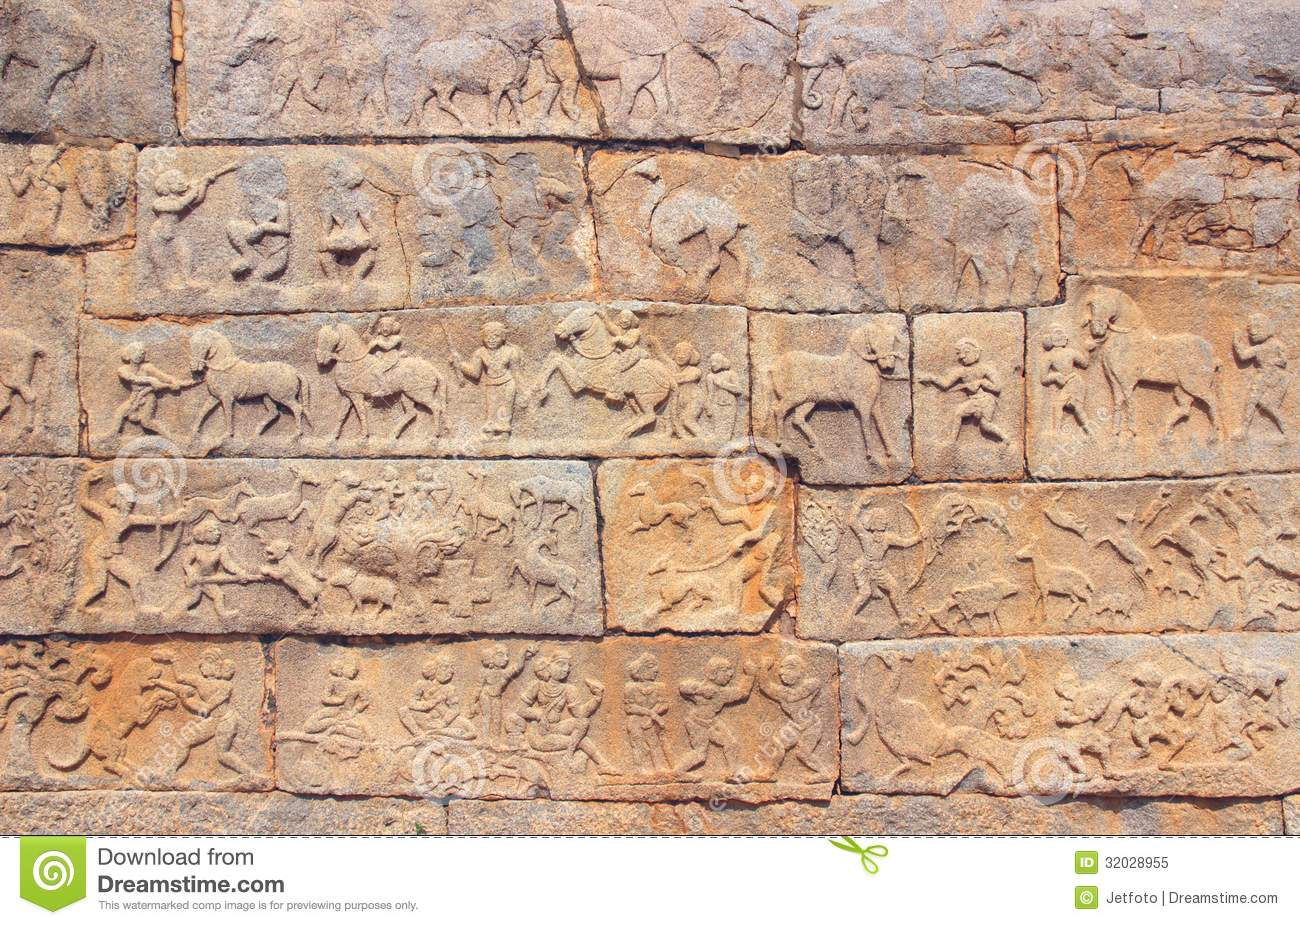 Wall with a carved relief scenes of hunting and life